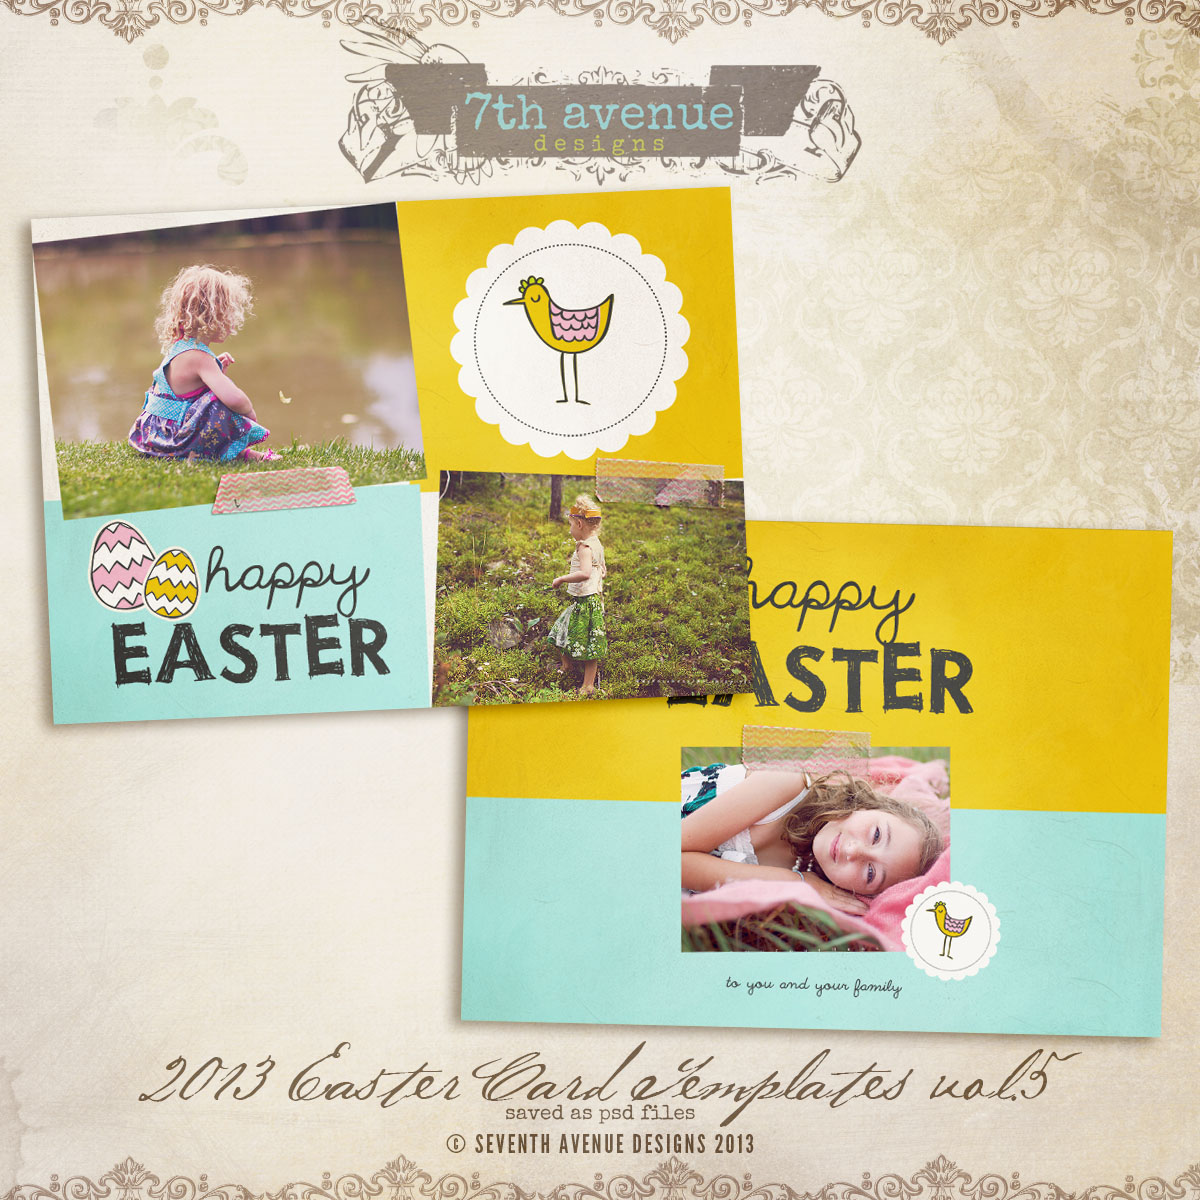 2013 Easter Card vol.5